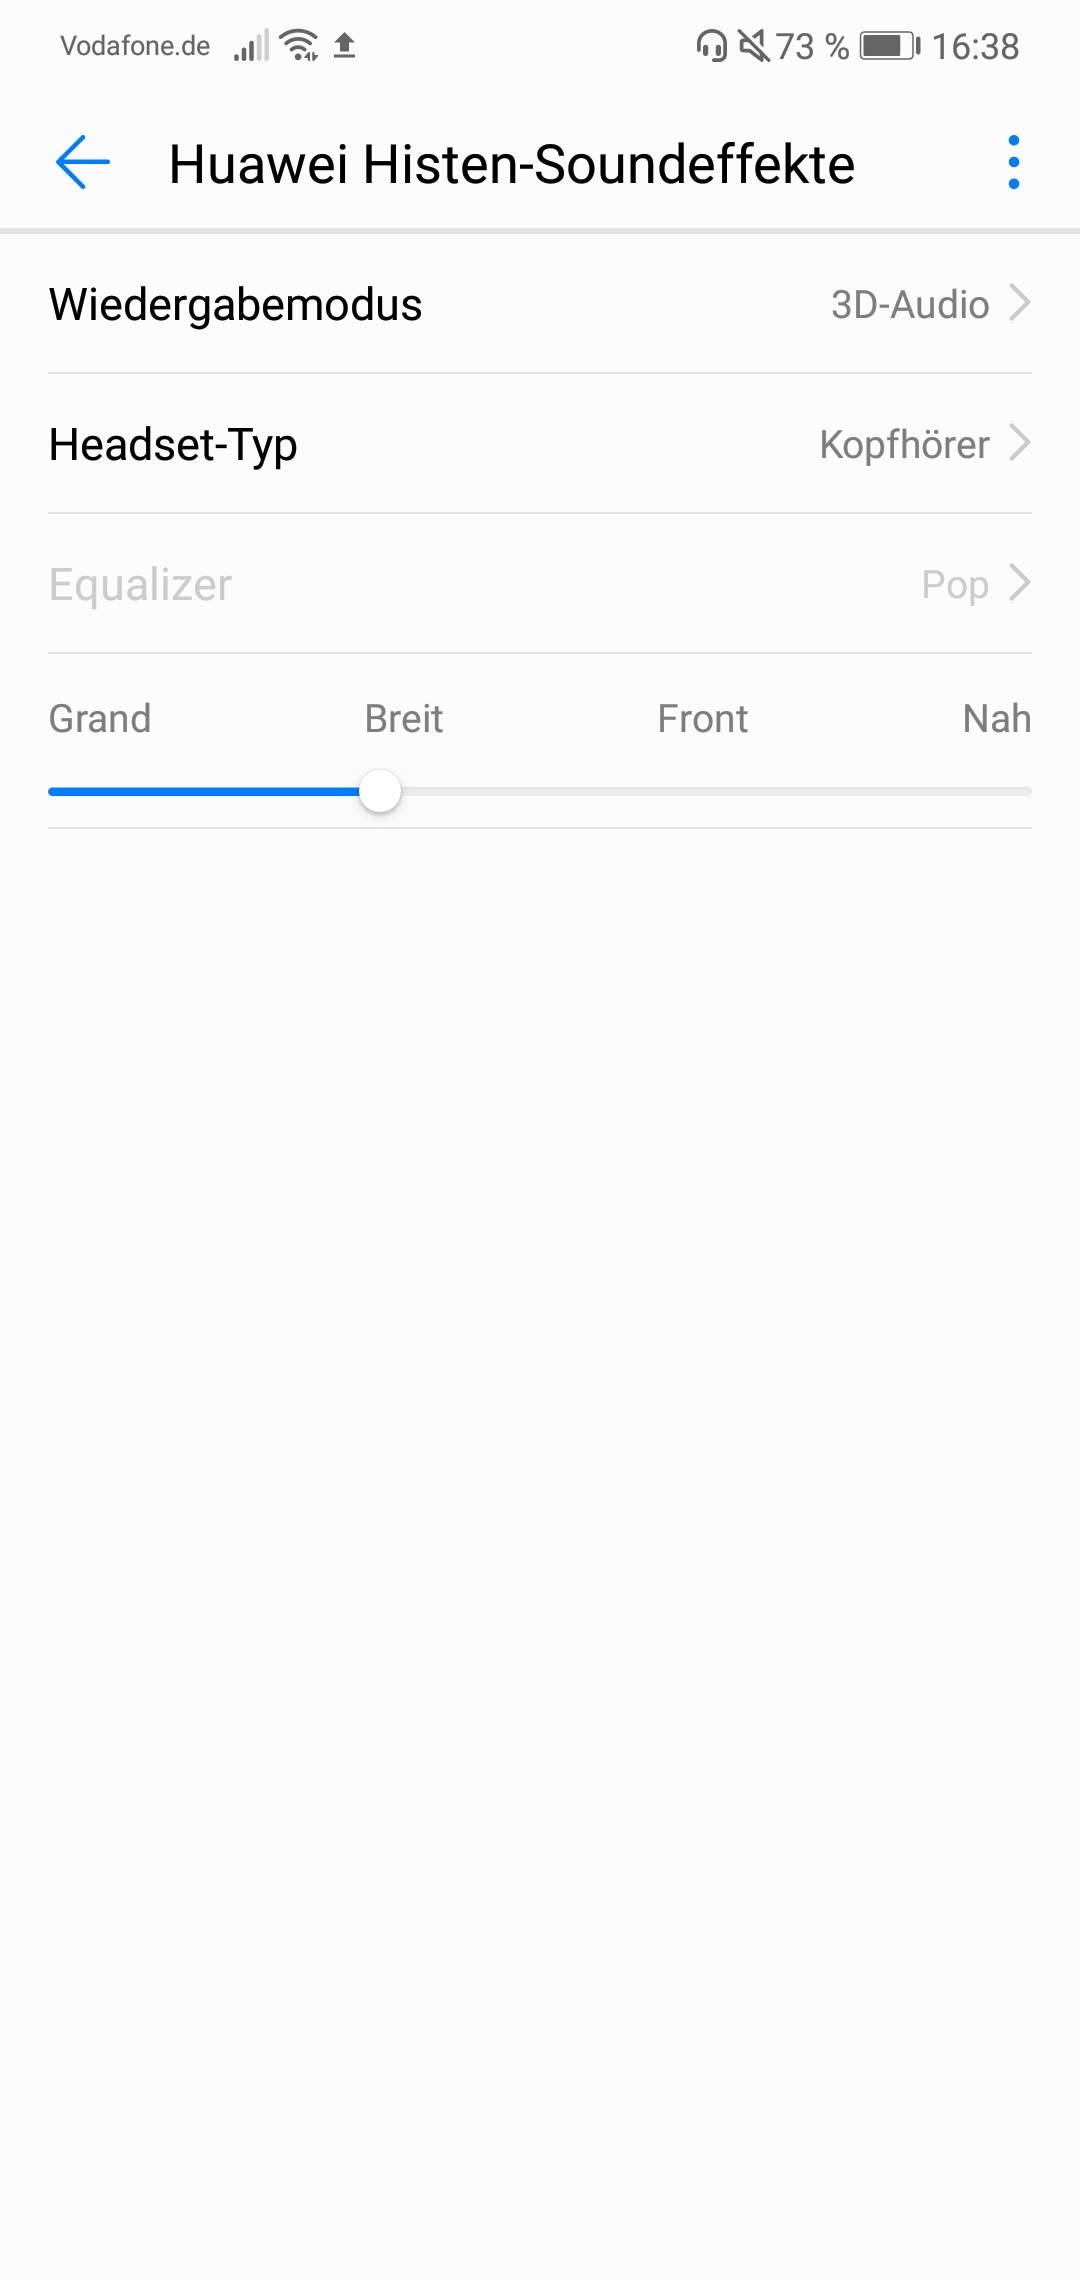 Screenshot_20180519-163850 Honor 10 ausgepackt und getestet Gadgets Gefeatured Google Android Honor Smartphones Technologie Testberichte YouTube Videos